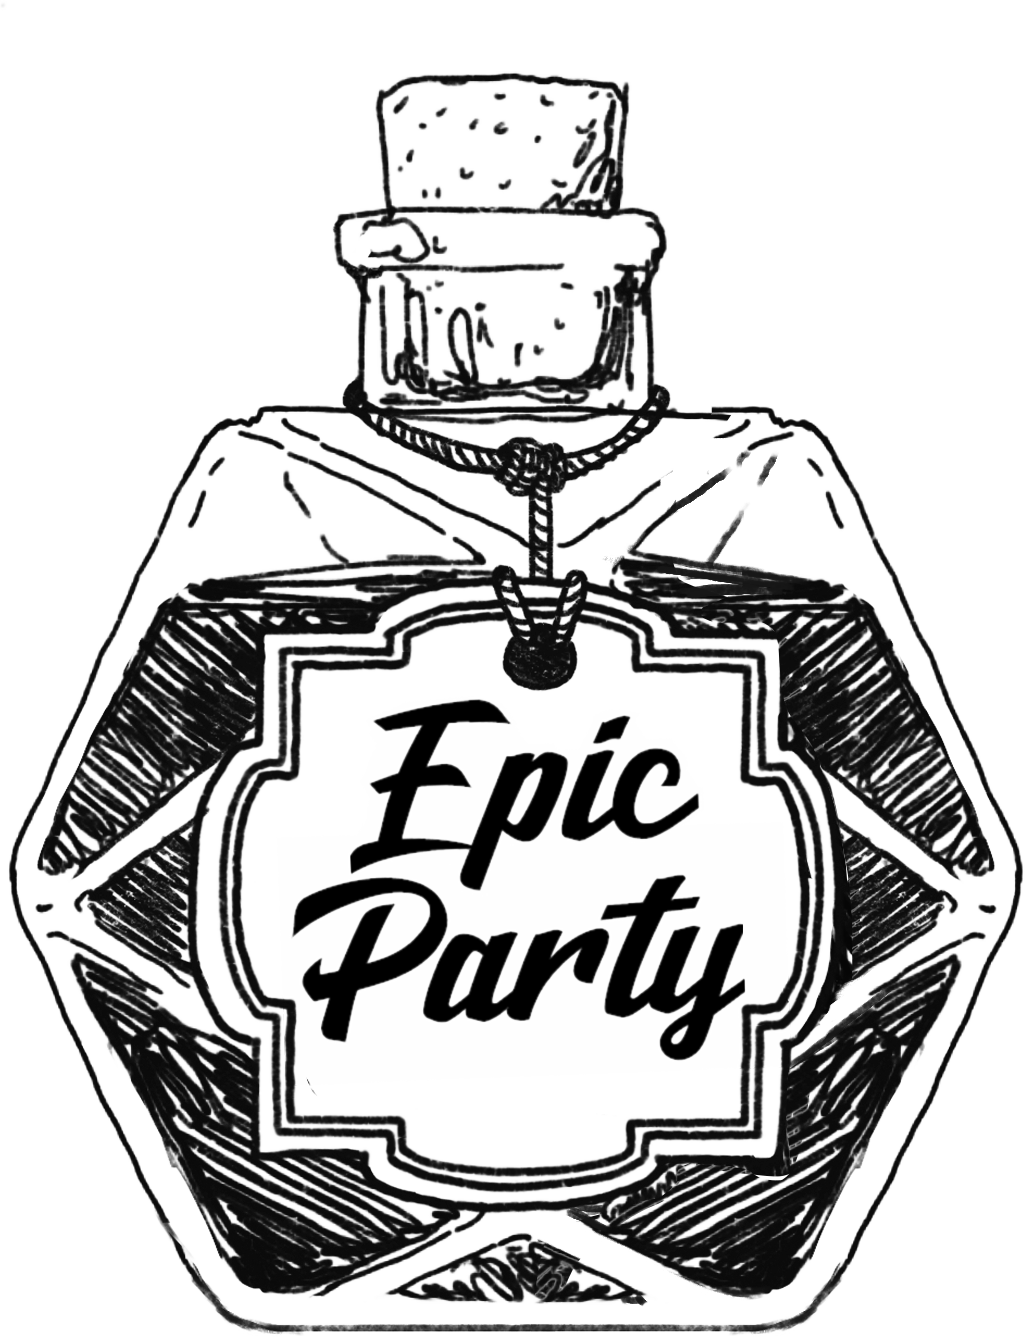 Epic Party LTD